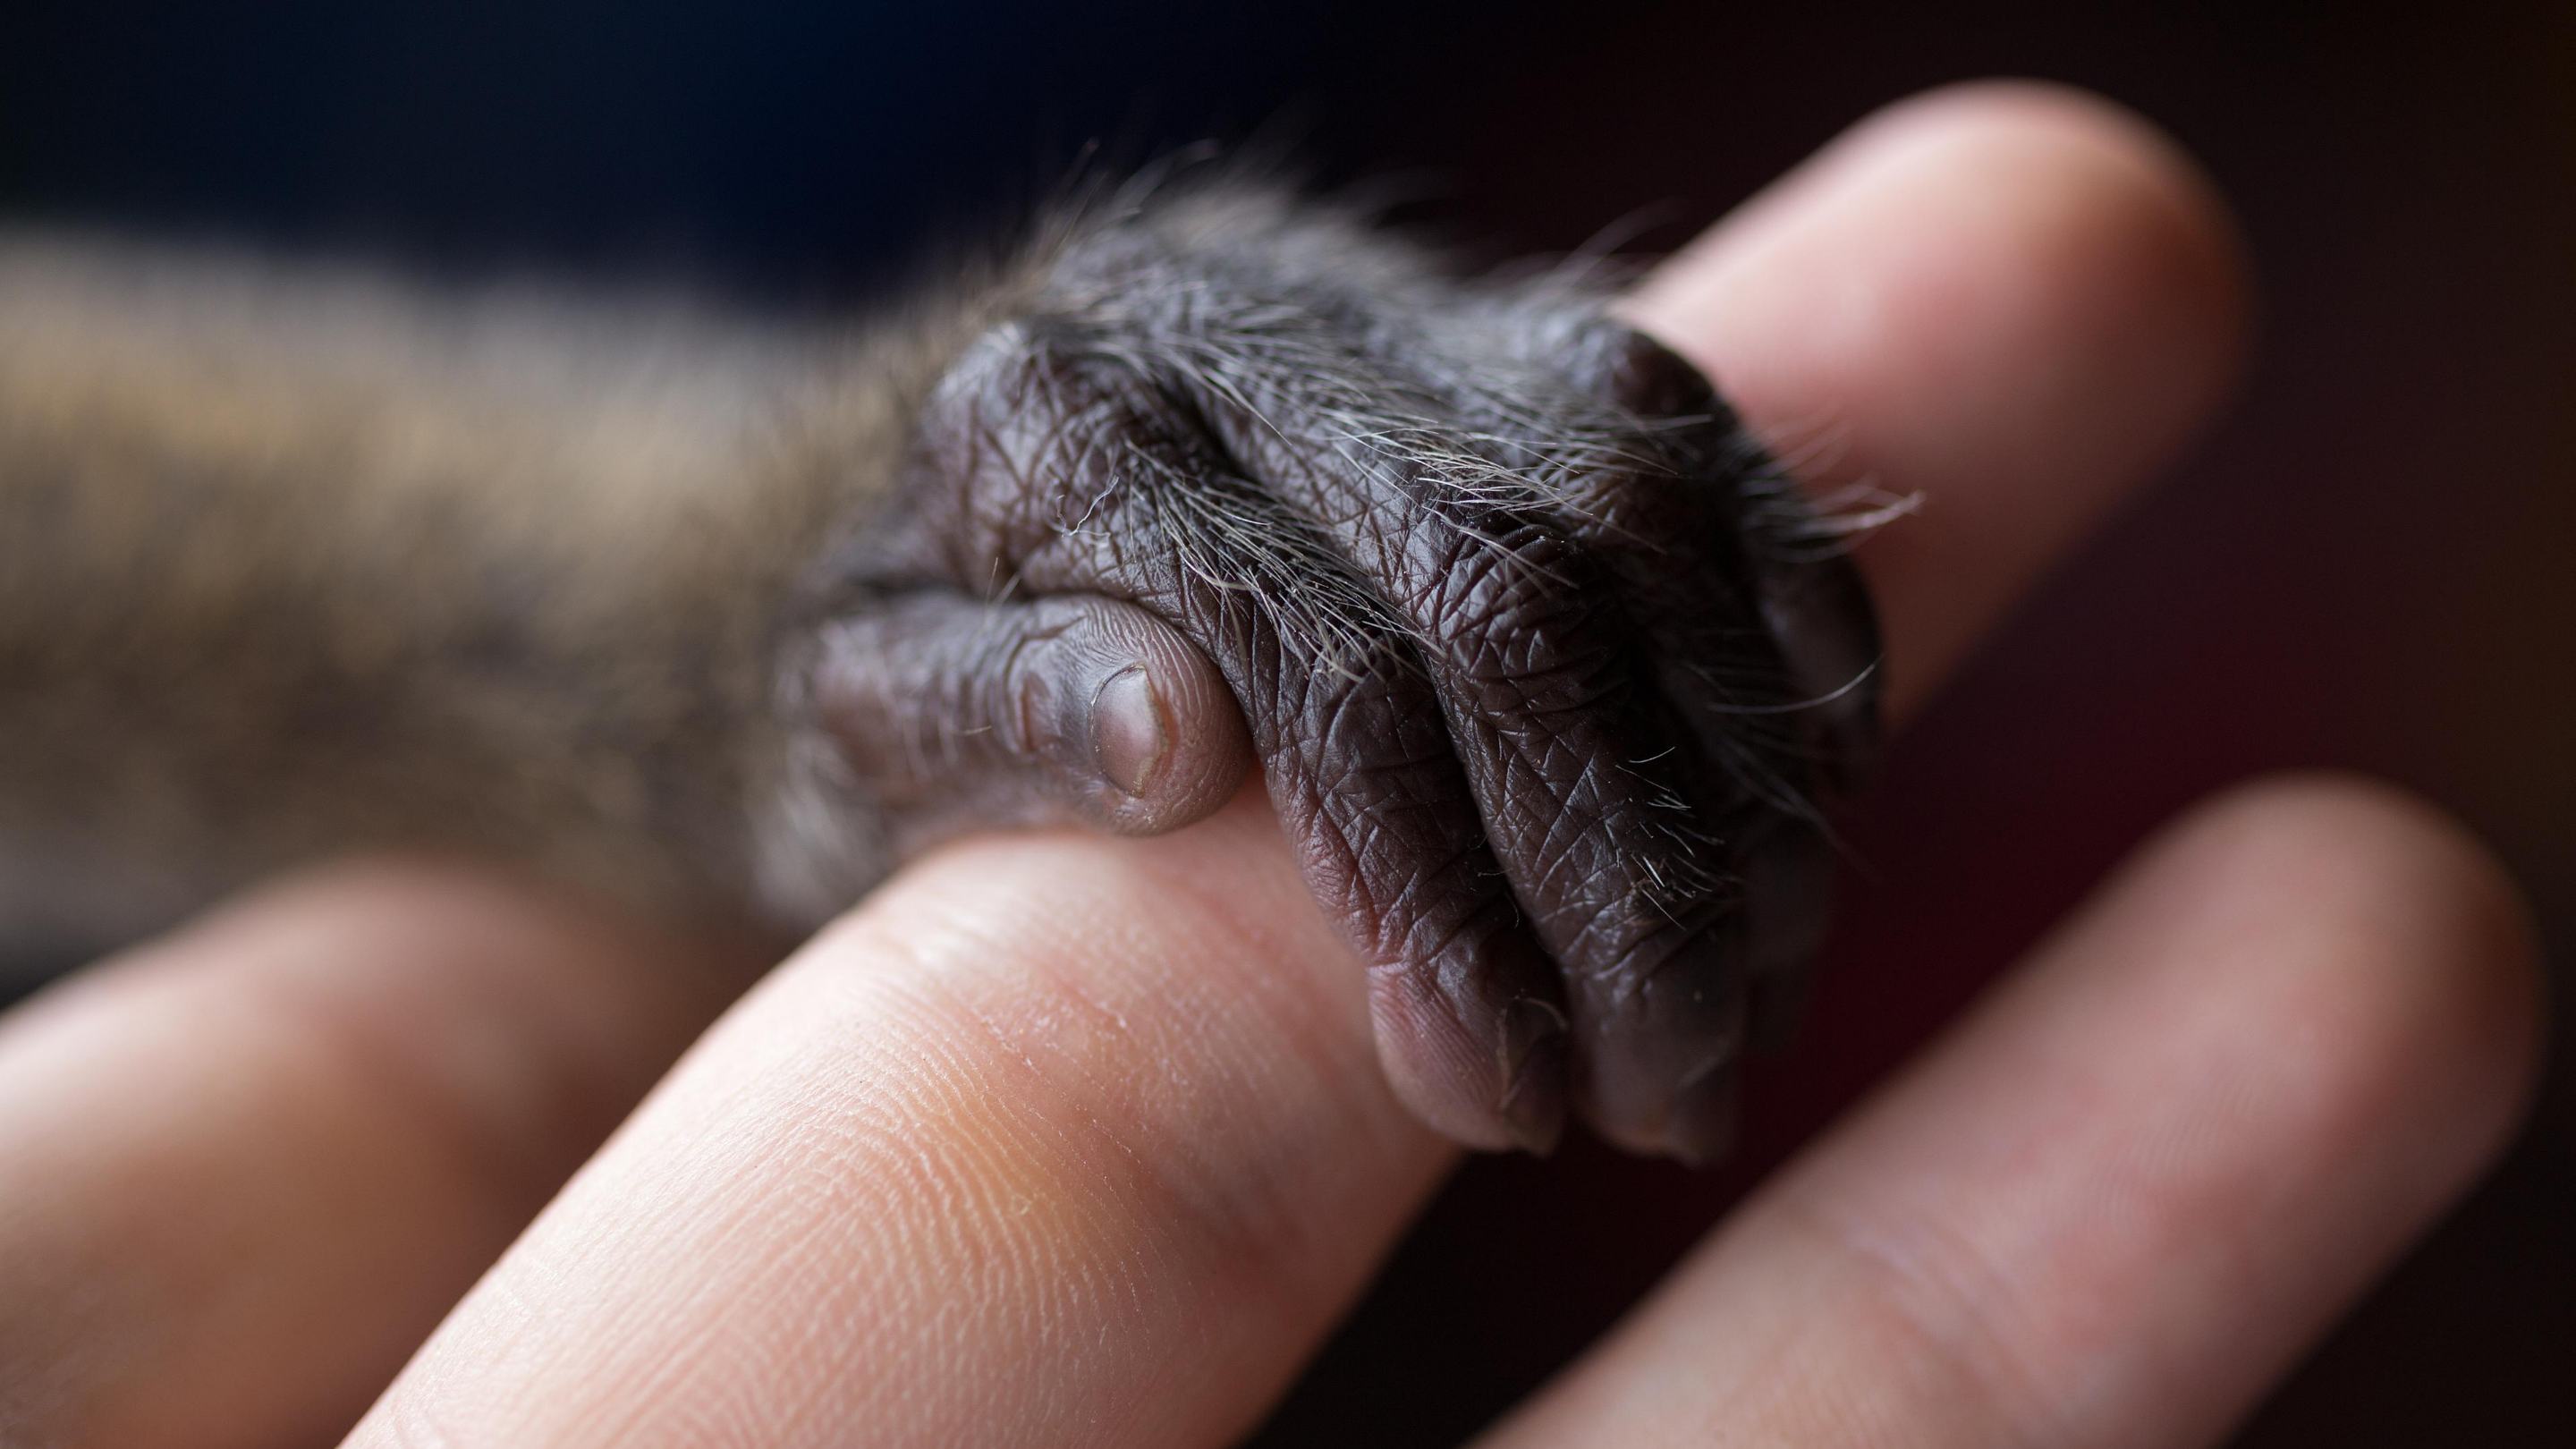 The small, furry hand of an infant monkey clutches a human finger